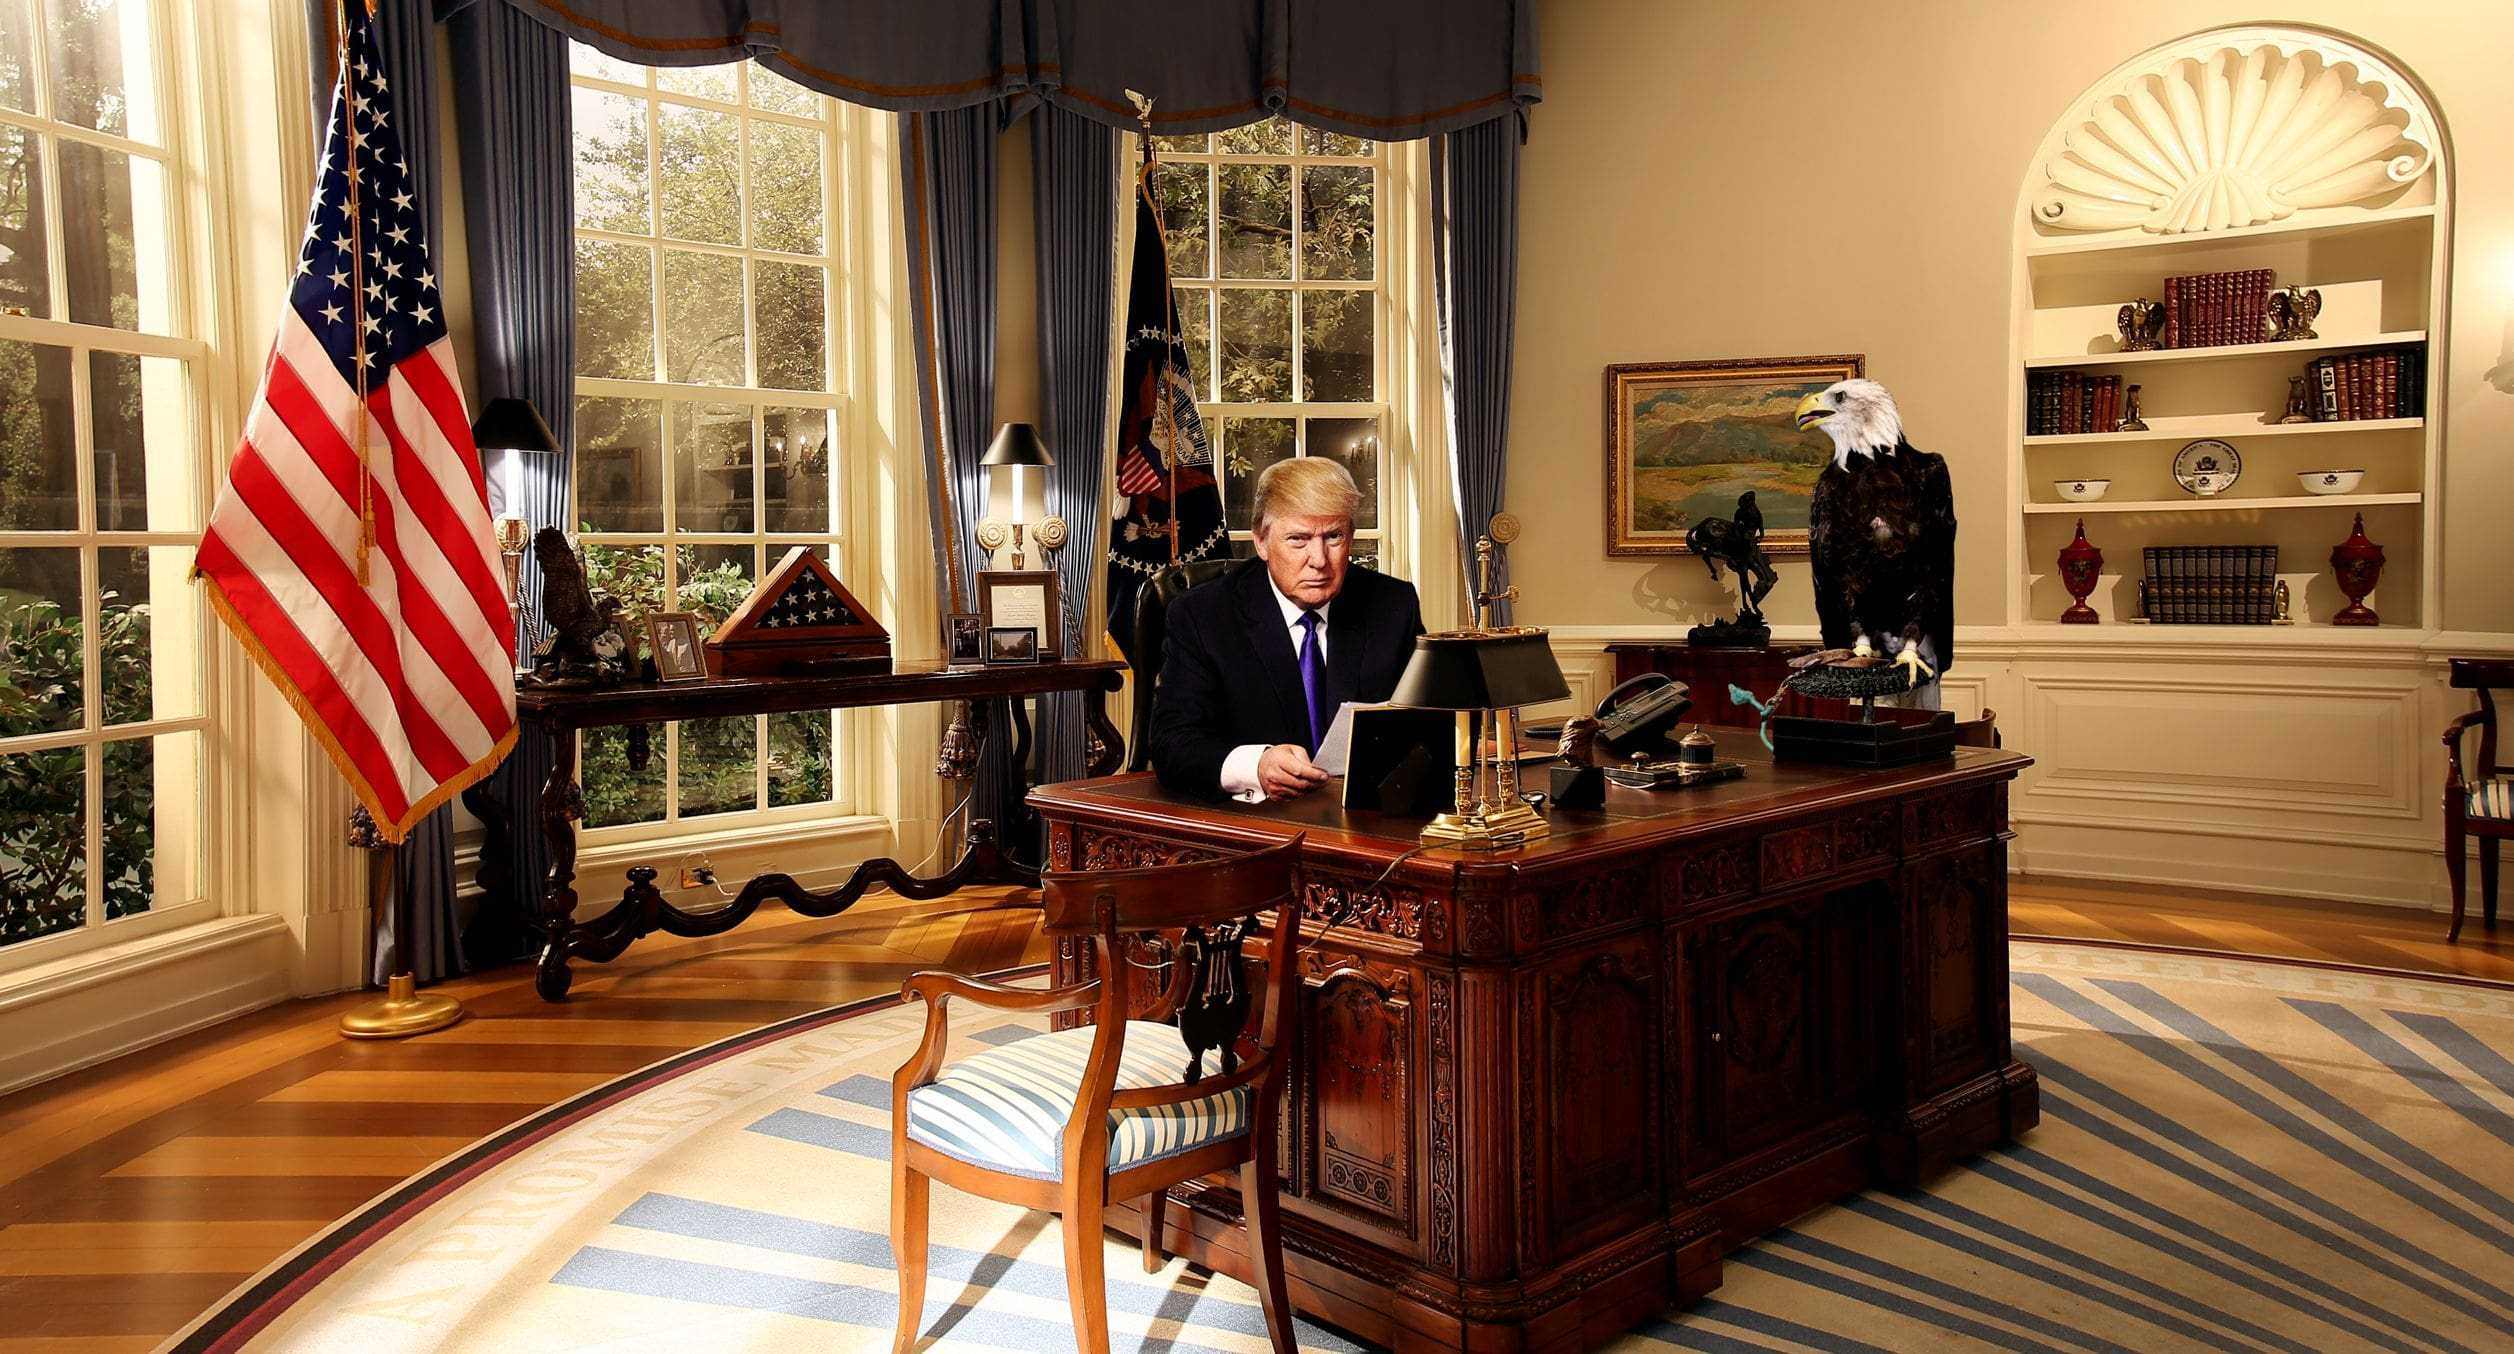 Trump Oval Office Wallpaper